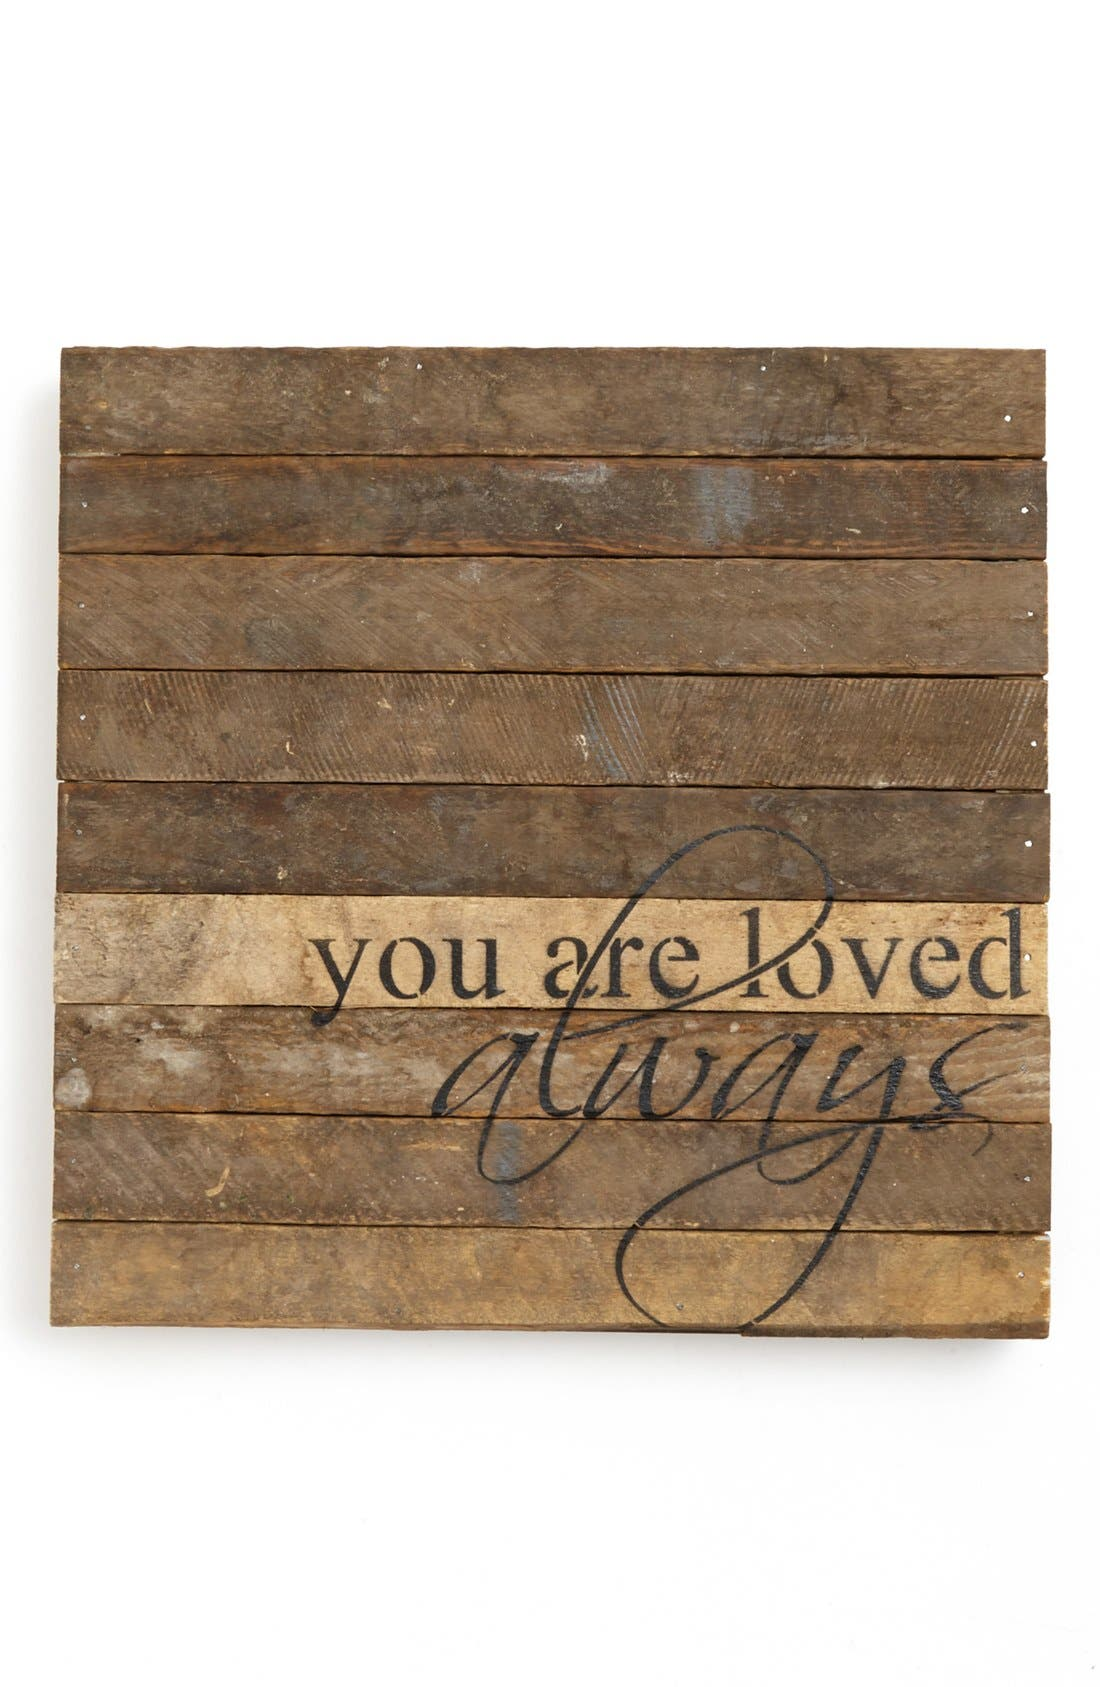 Alternate Image 1 Selected - Second Nature by Hand 'You Are Loved Always' Wall Art